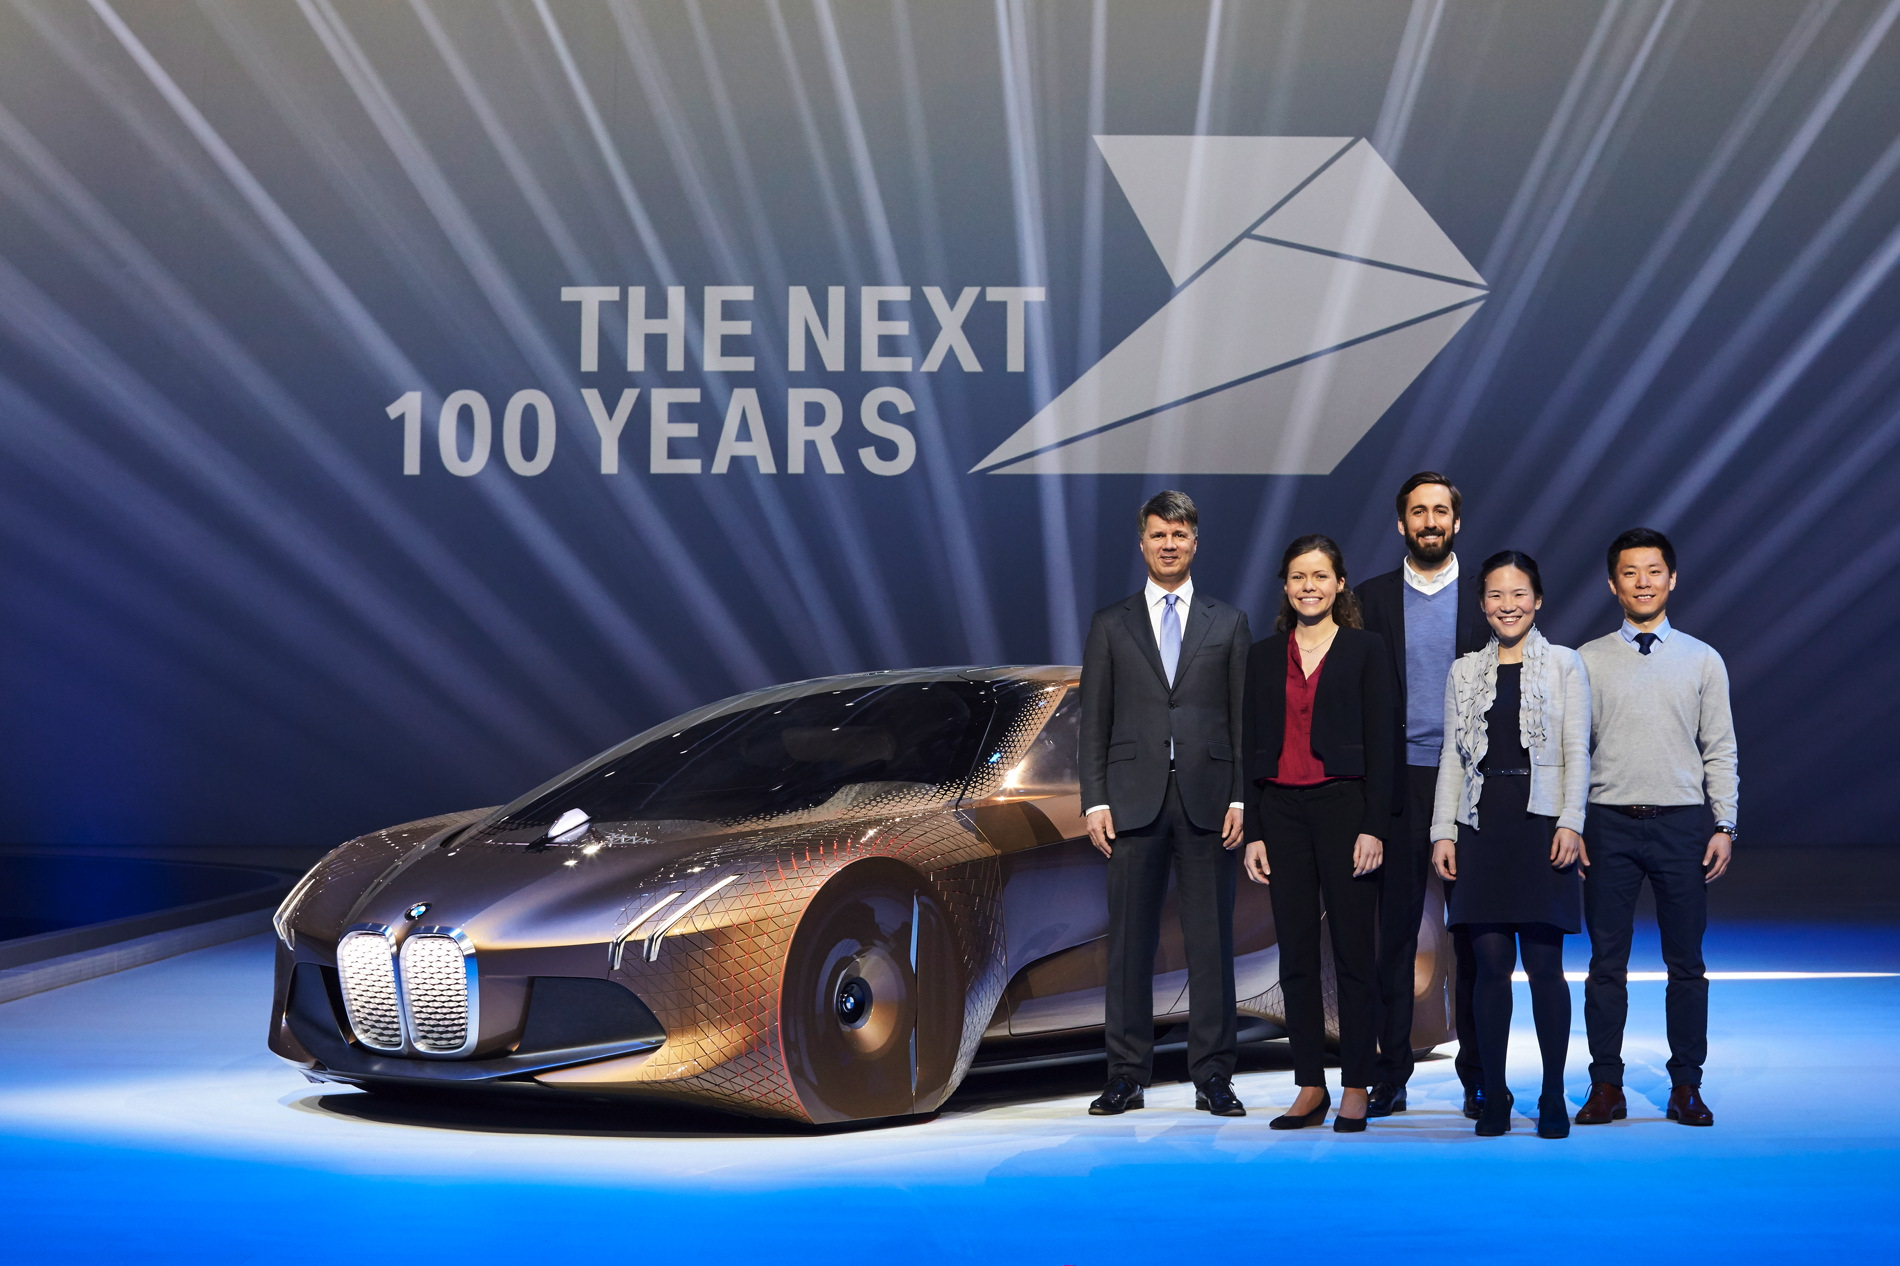 BMW VISION NEXT 100 images 33